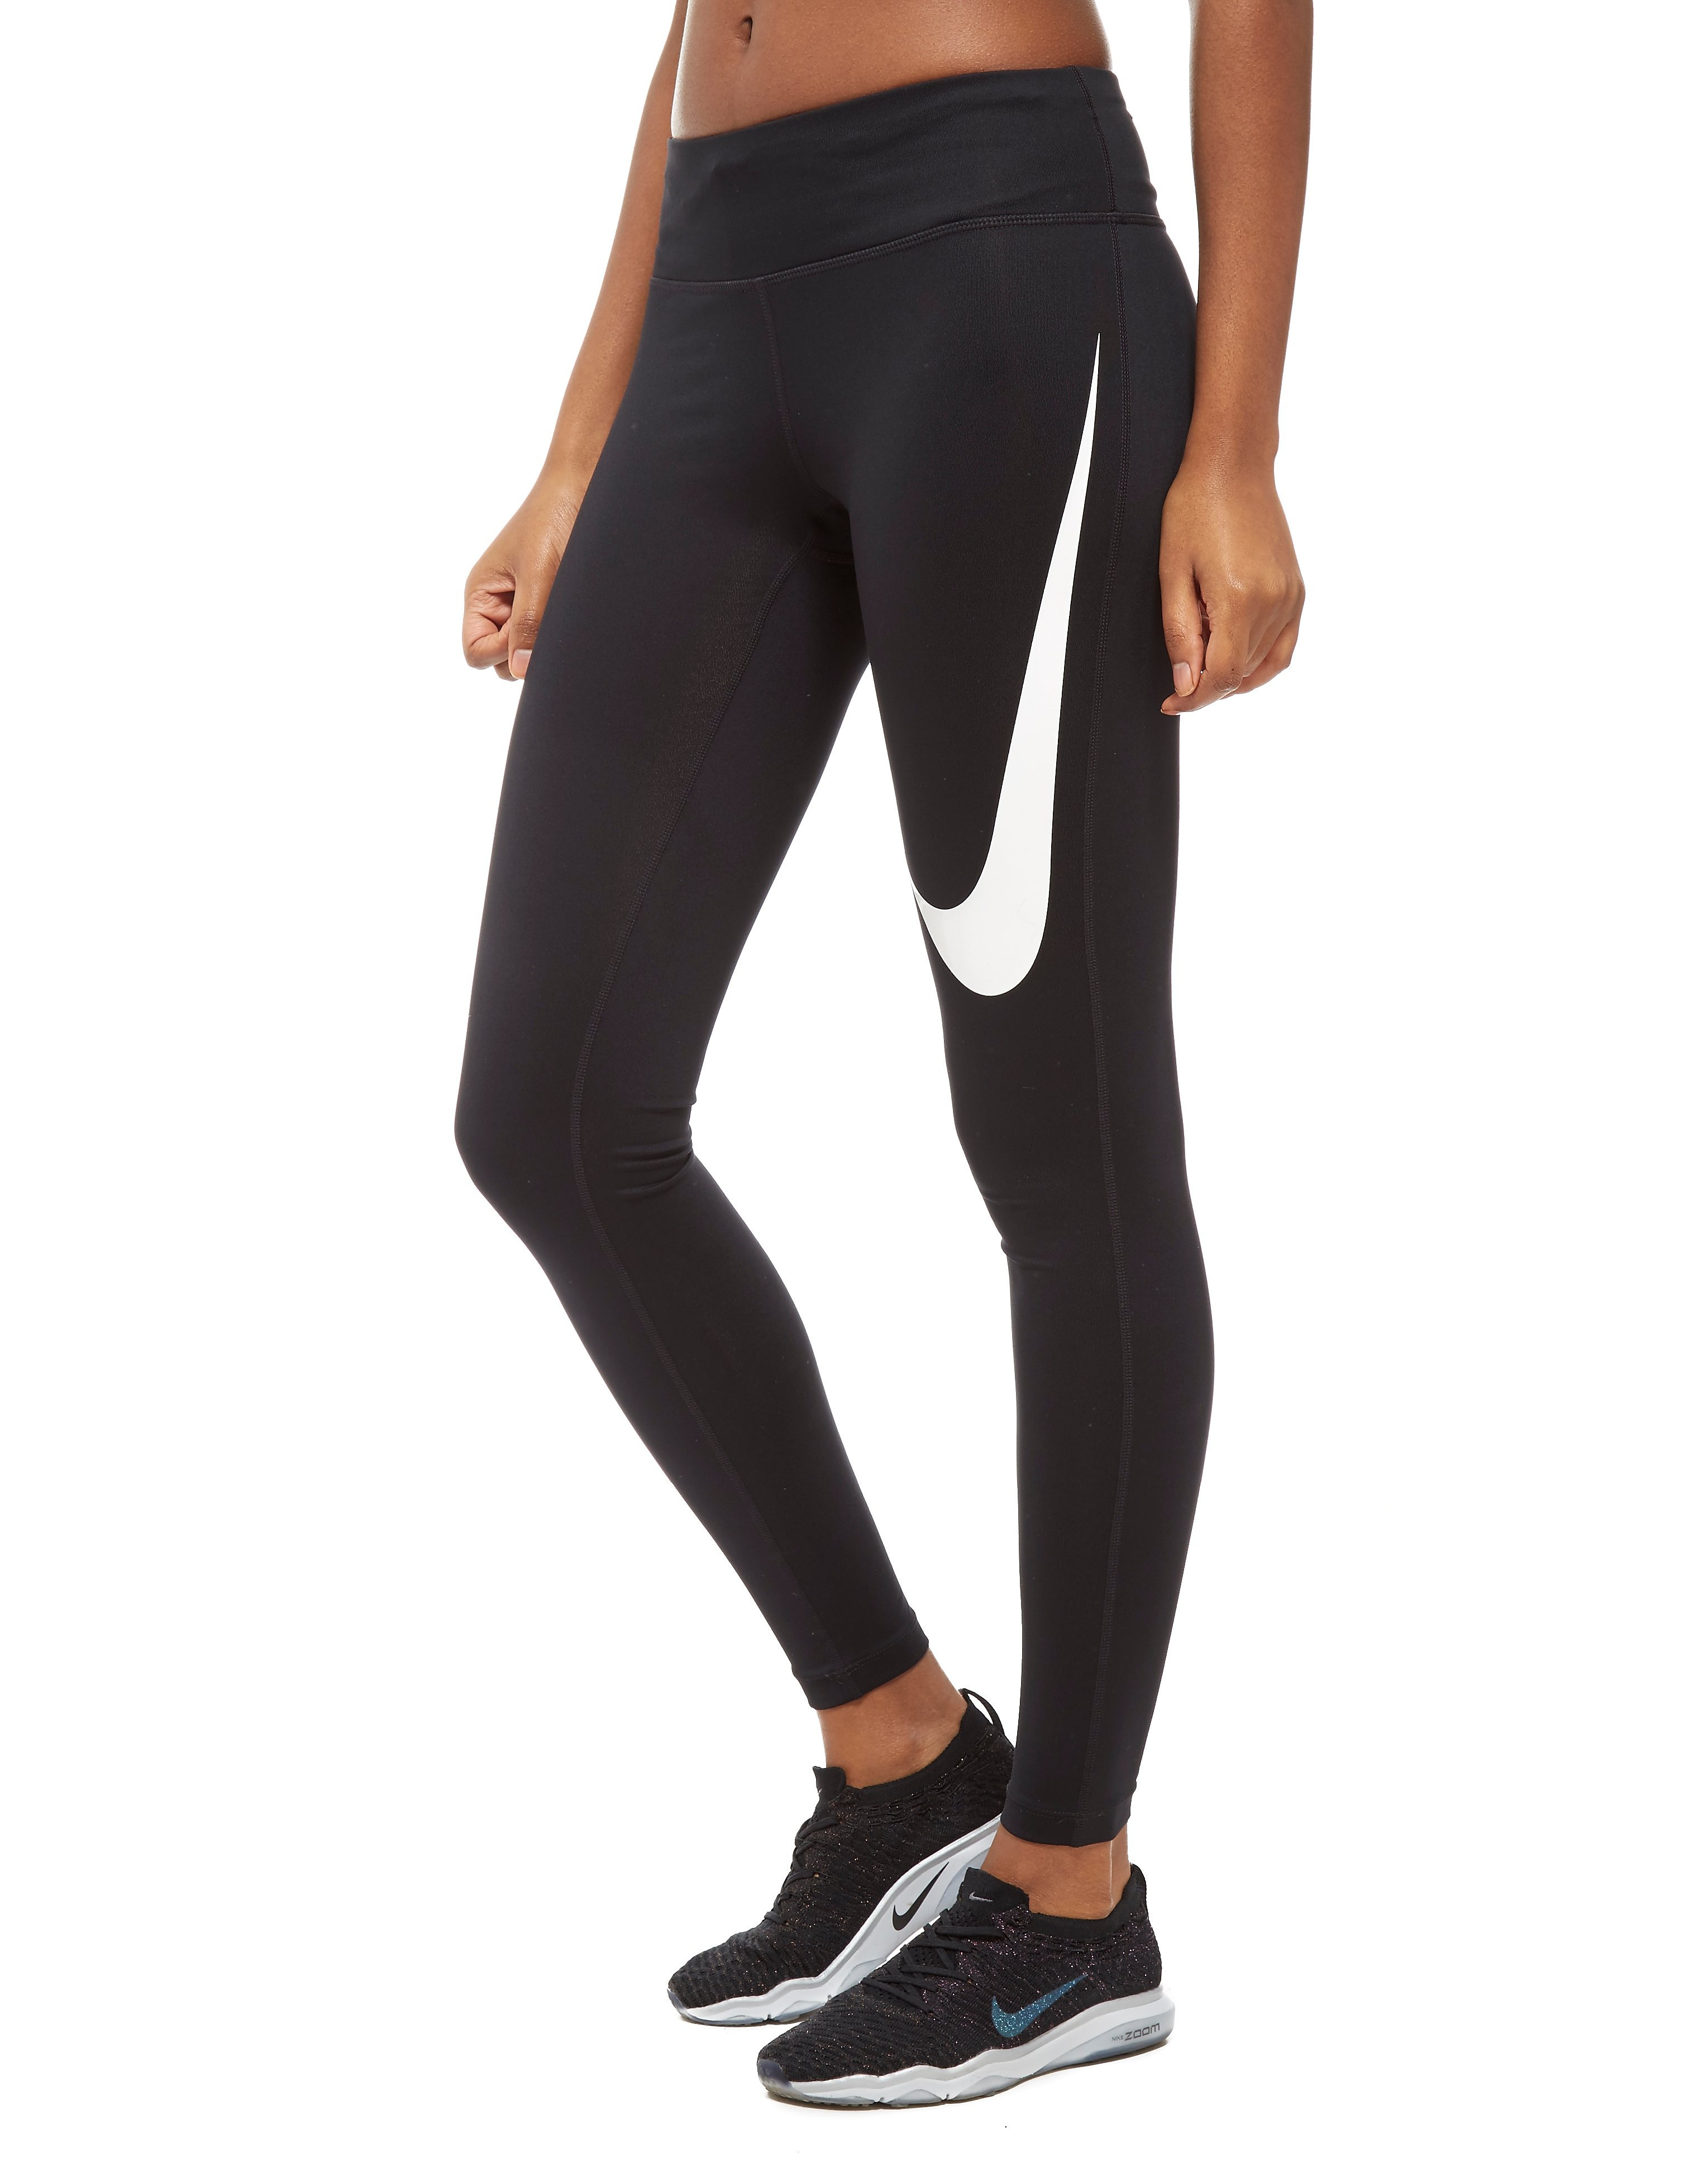 Nike Power Essential Running Tights